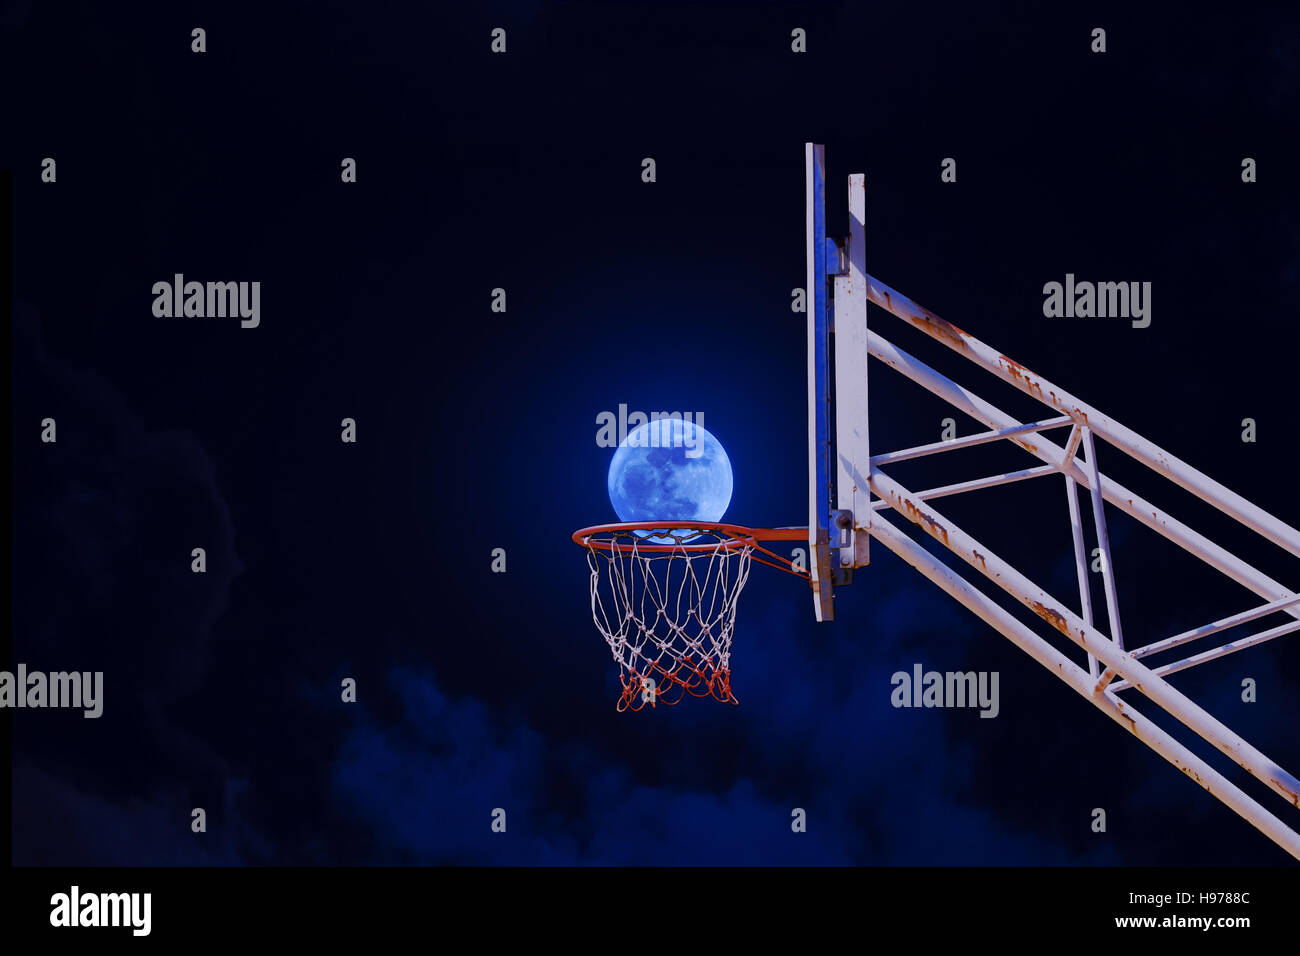 Mond in einen Basketballkorb. Stockfoto